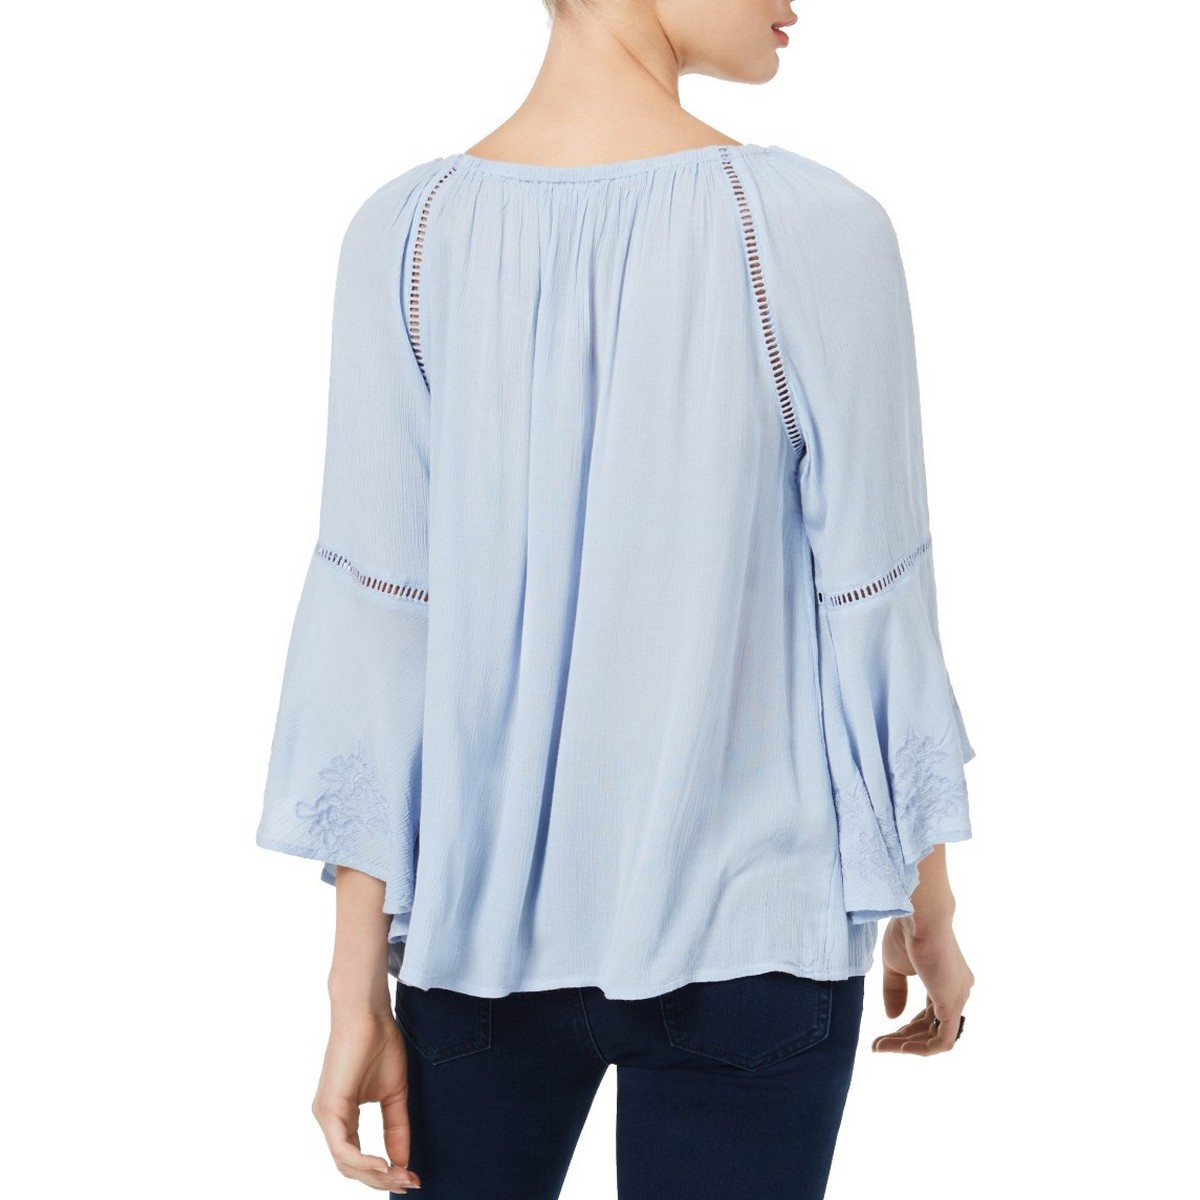 INC-NEW-Women-039-s-Embroidered-Bell-Sleeve-Blouse-Shirt-Top-TEDO thumbnail 4